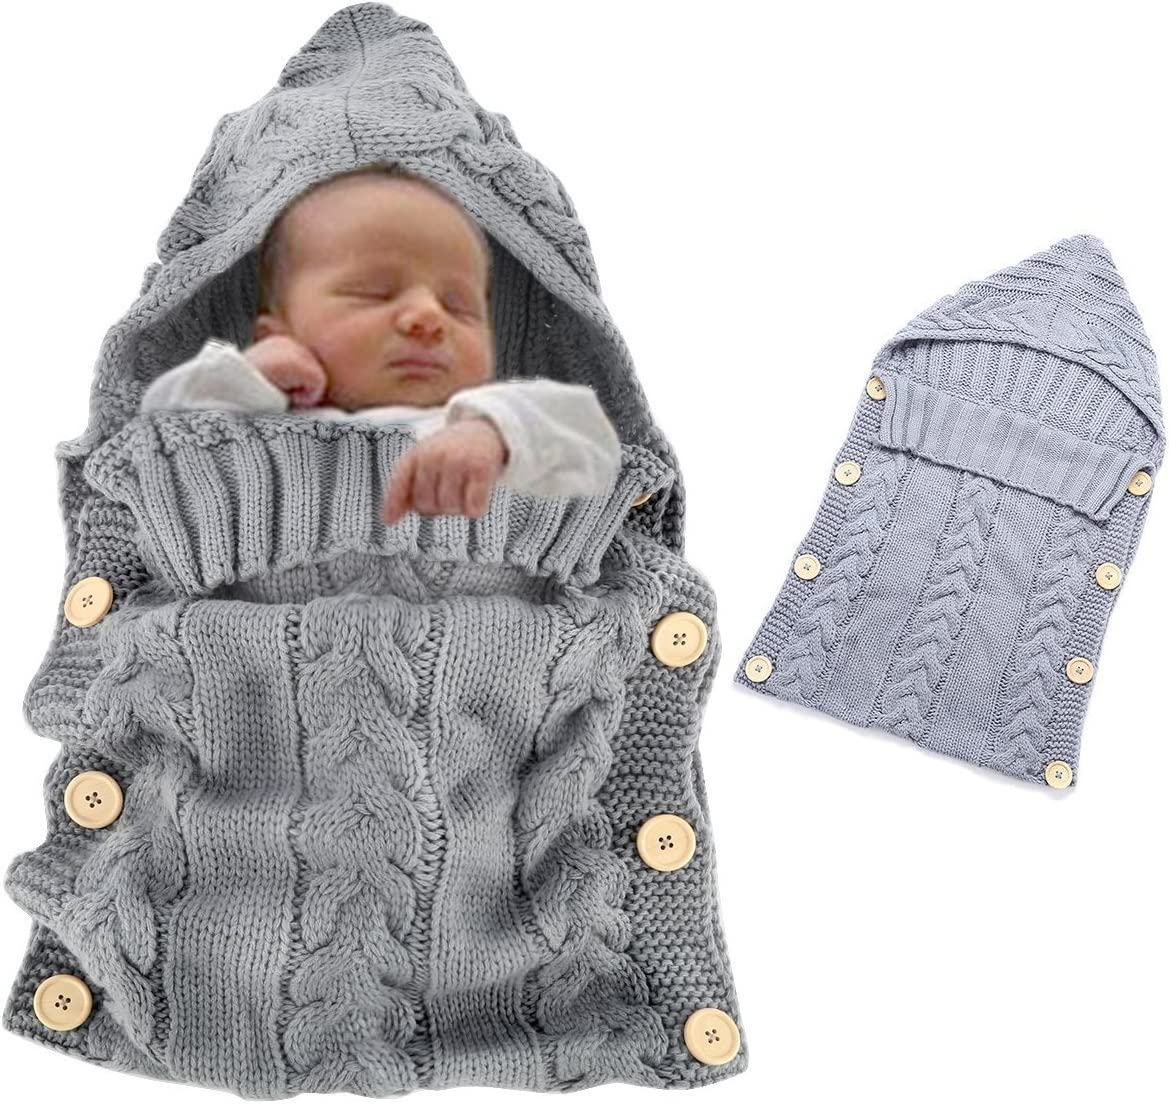 Baby Sleeping Bag Weant Newborn Swaddle Sleeping Wrap Blanket Cute Toddlers Infant Baby Boy Girl Unisex Fleece Swaddle Blanket Photography Prop for 0-12 Months